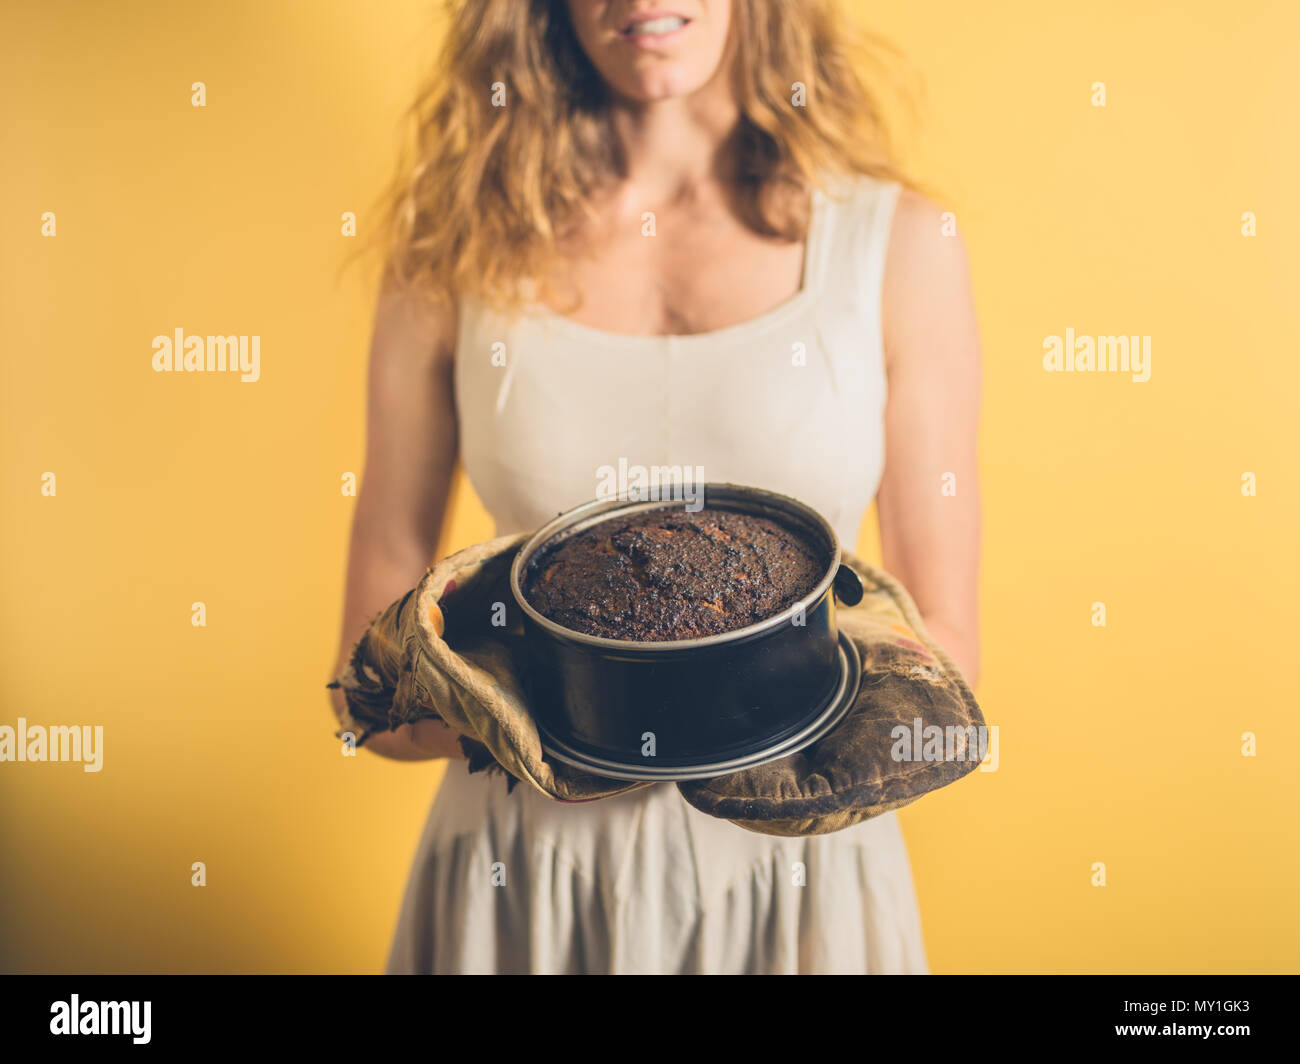 A young woman is holding a burnt cake with burnt oven gloves - Stock Image